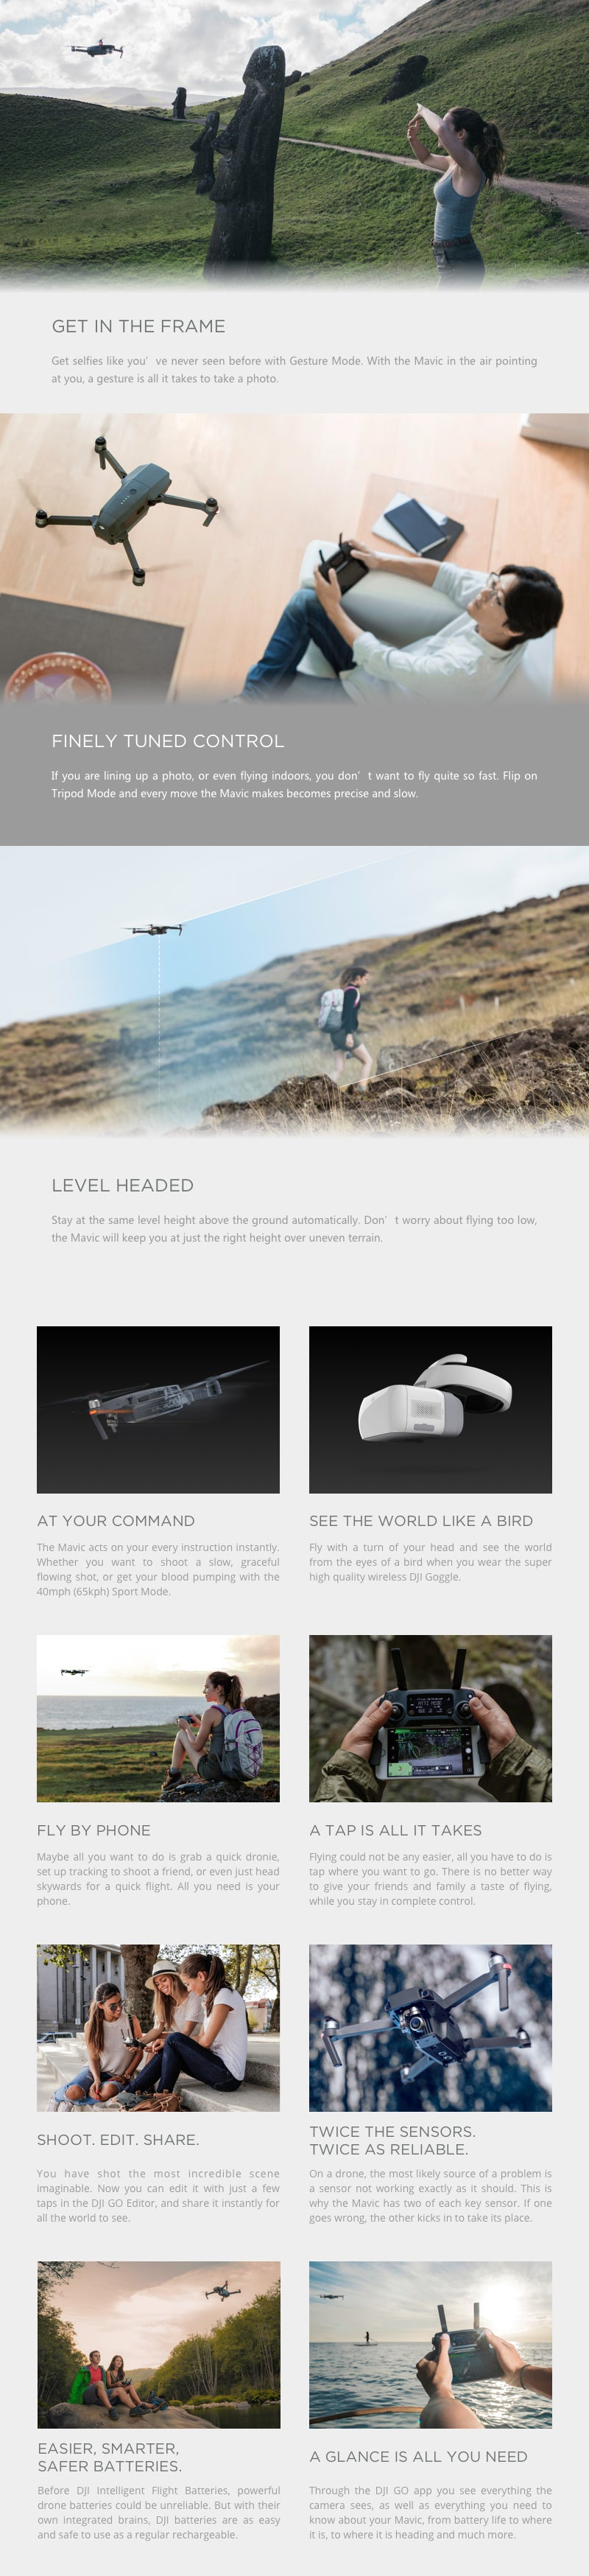 DJI Mavic Pro Description 3